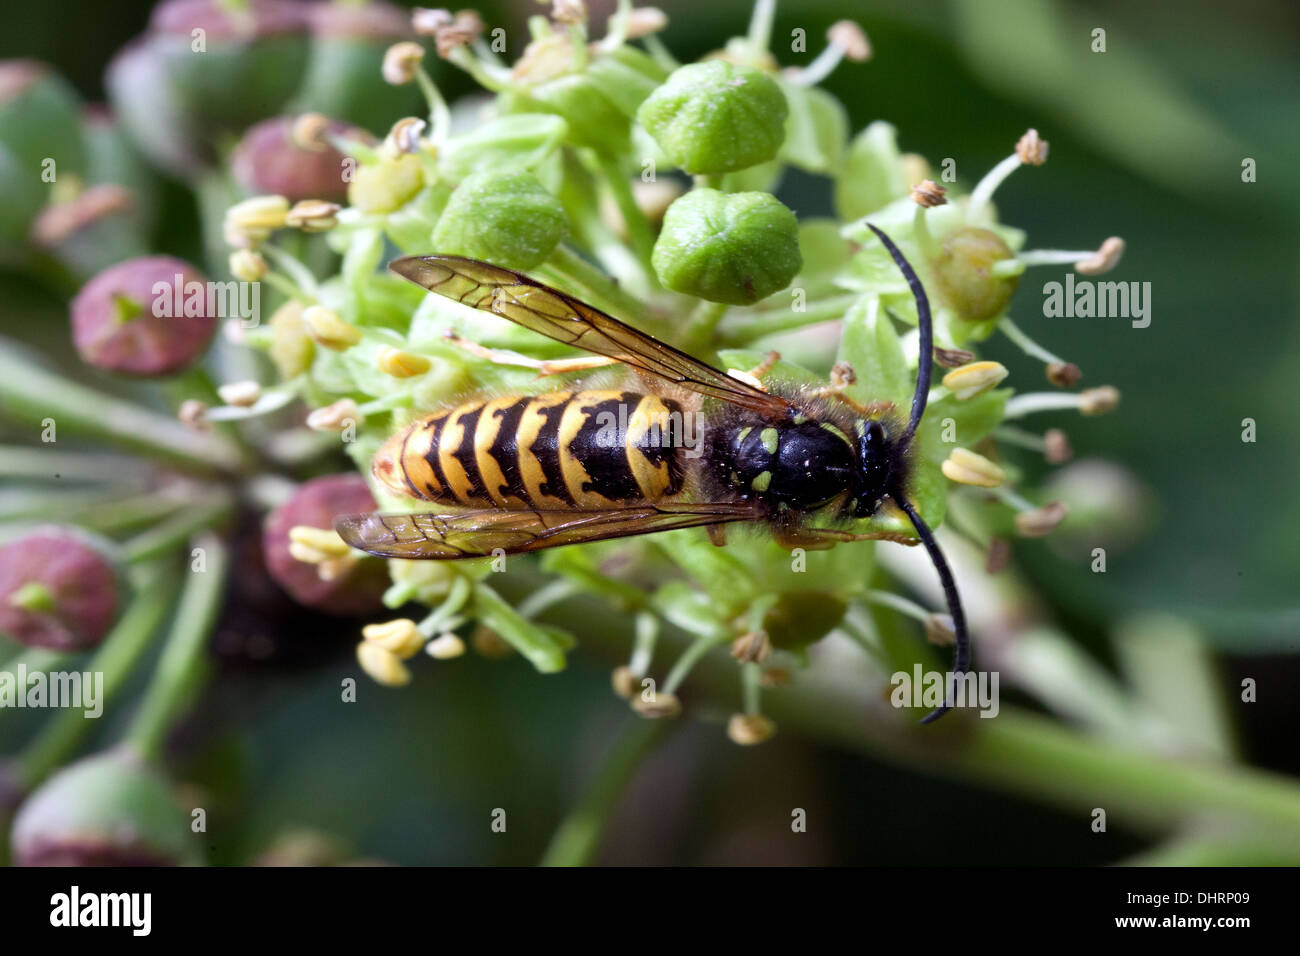 A wasp feeding around some ripening ivy berries in Devon, UK. - Stock Image